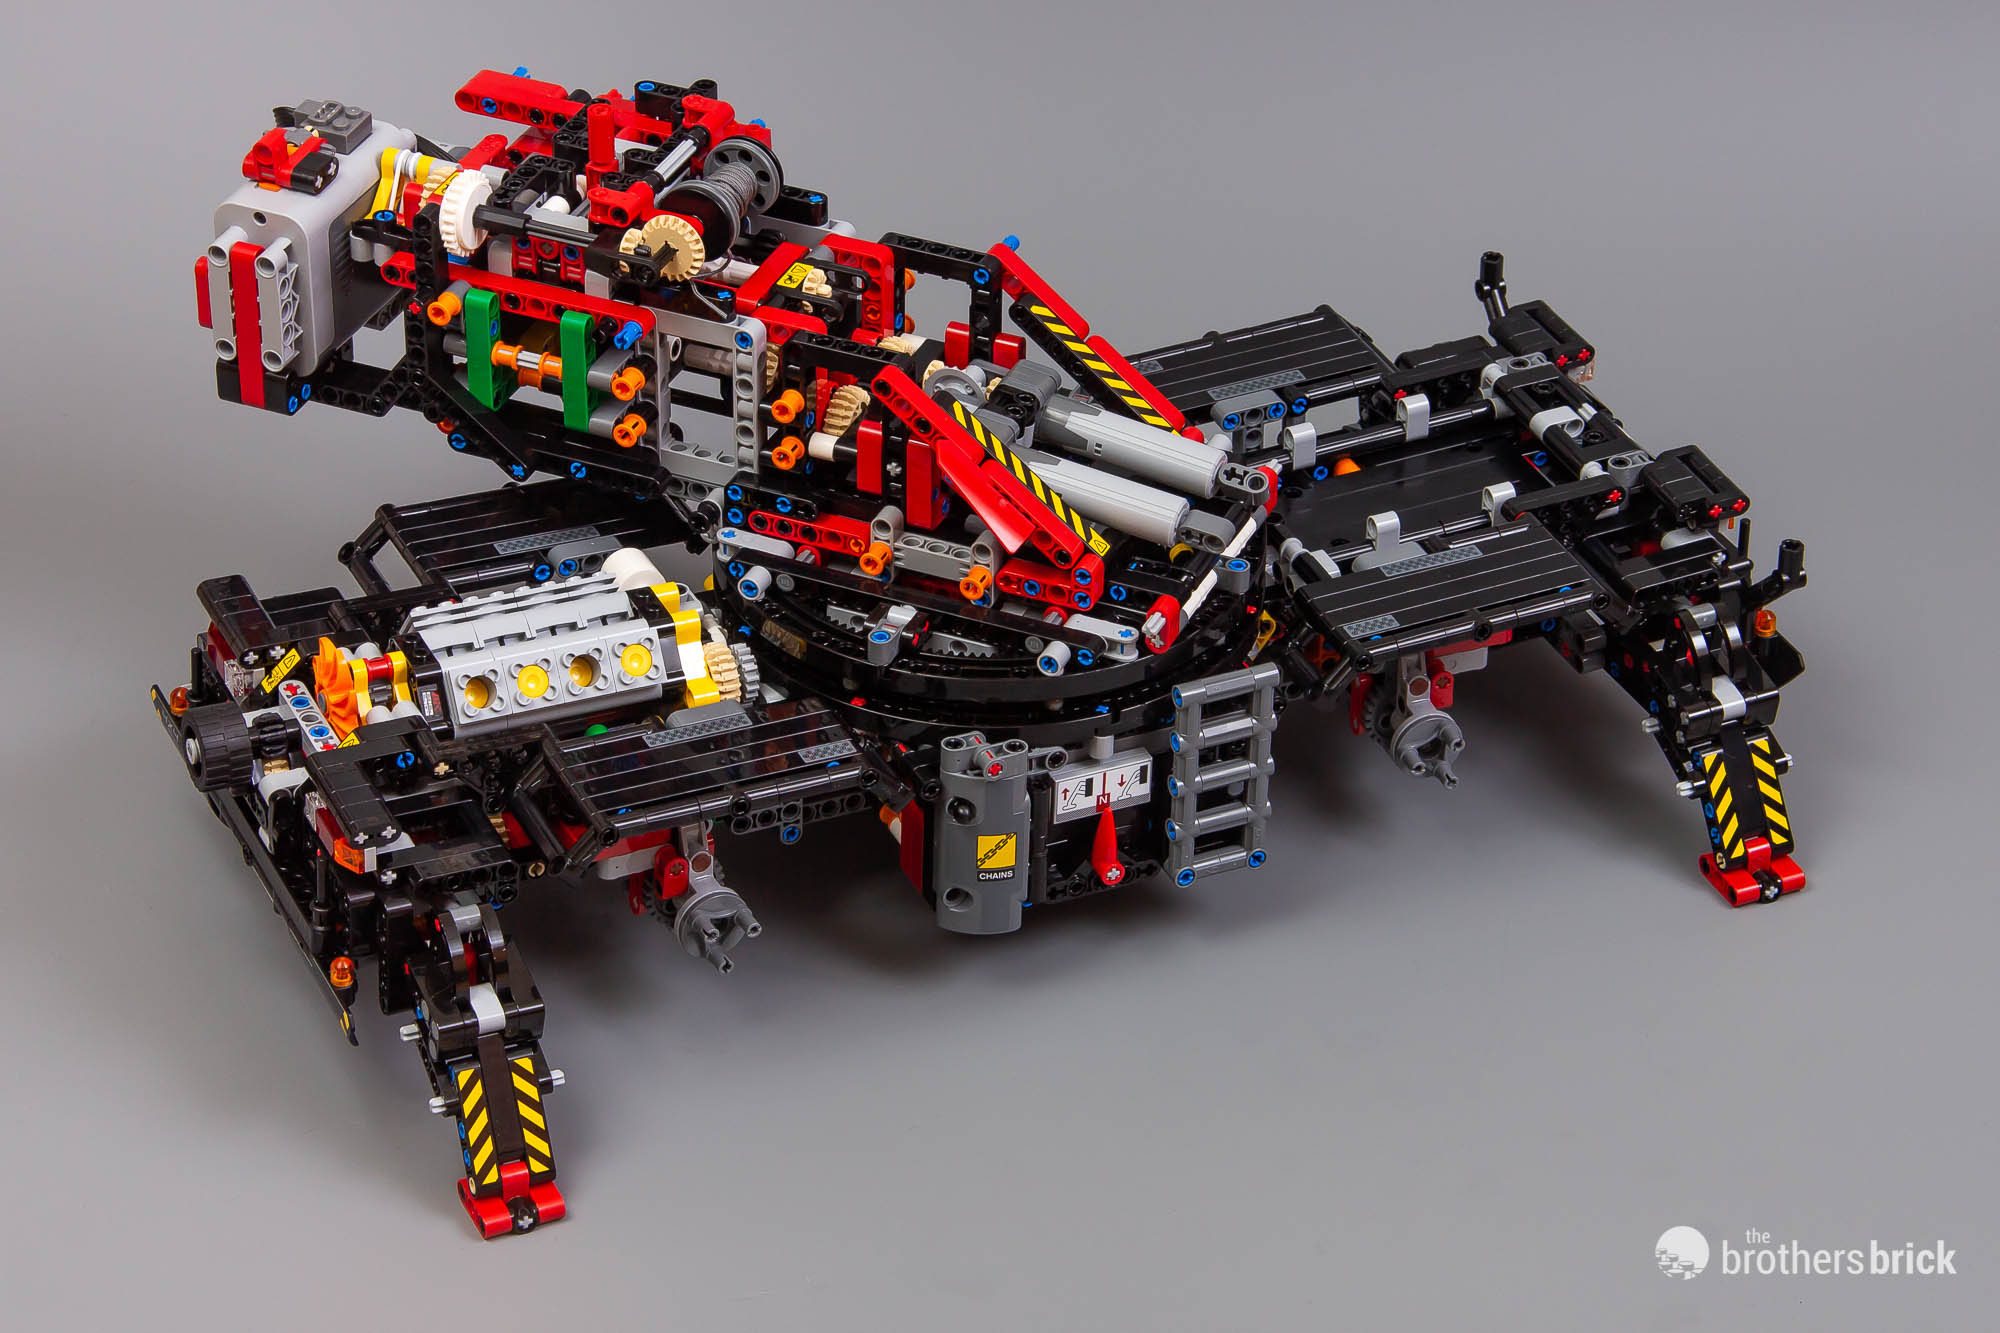 Lego 42082 Rough Terrain Crane Review 51 The Brothers Brick The